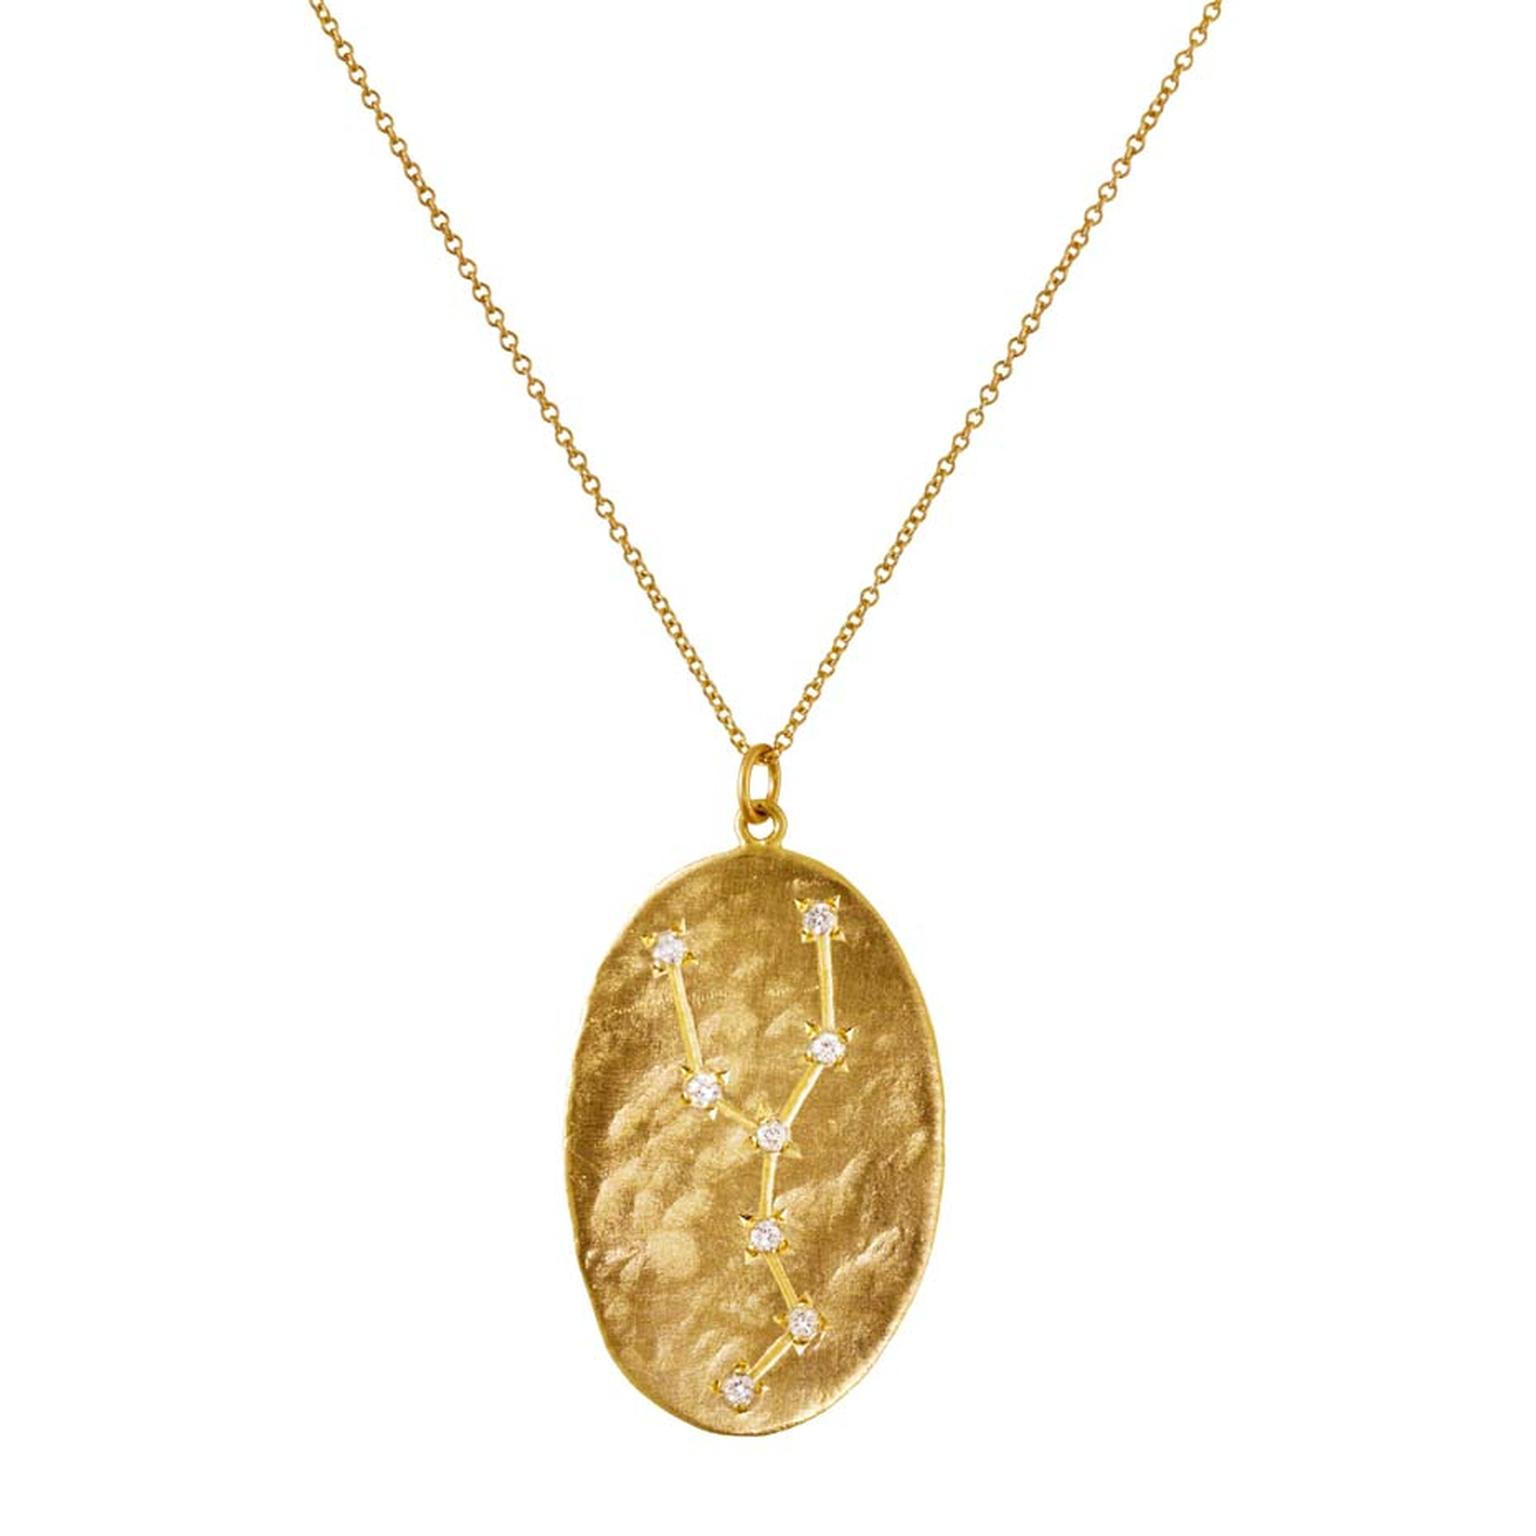 Yellow gold and diamond Taurus pendant necklace from Brooke Gregson's Astrology collection ($2,060). Available at Twist online.